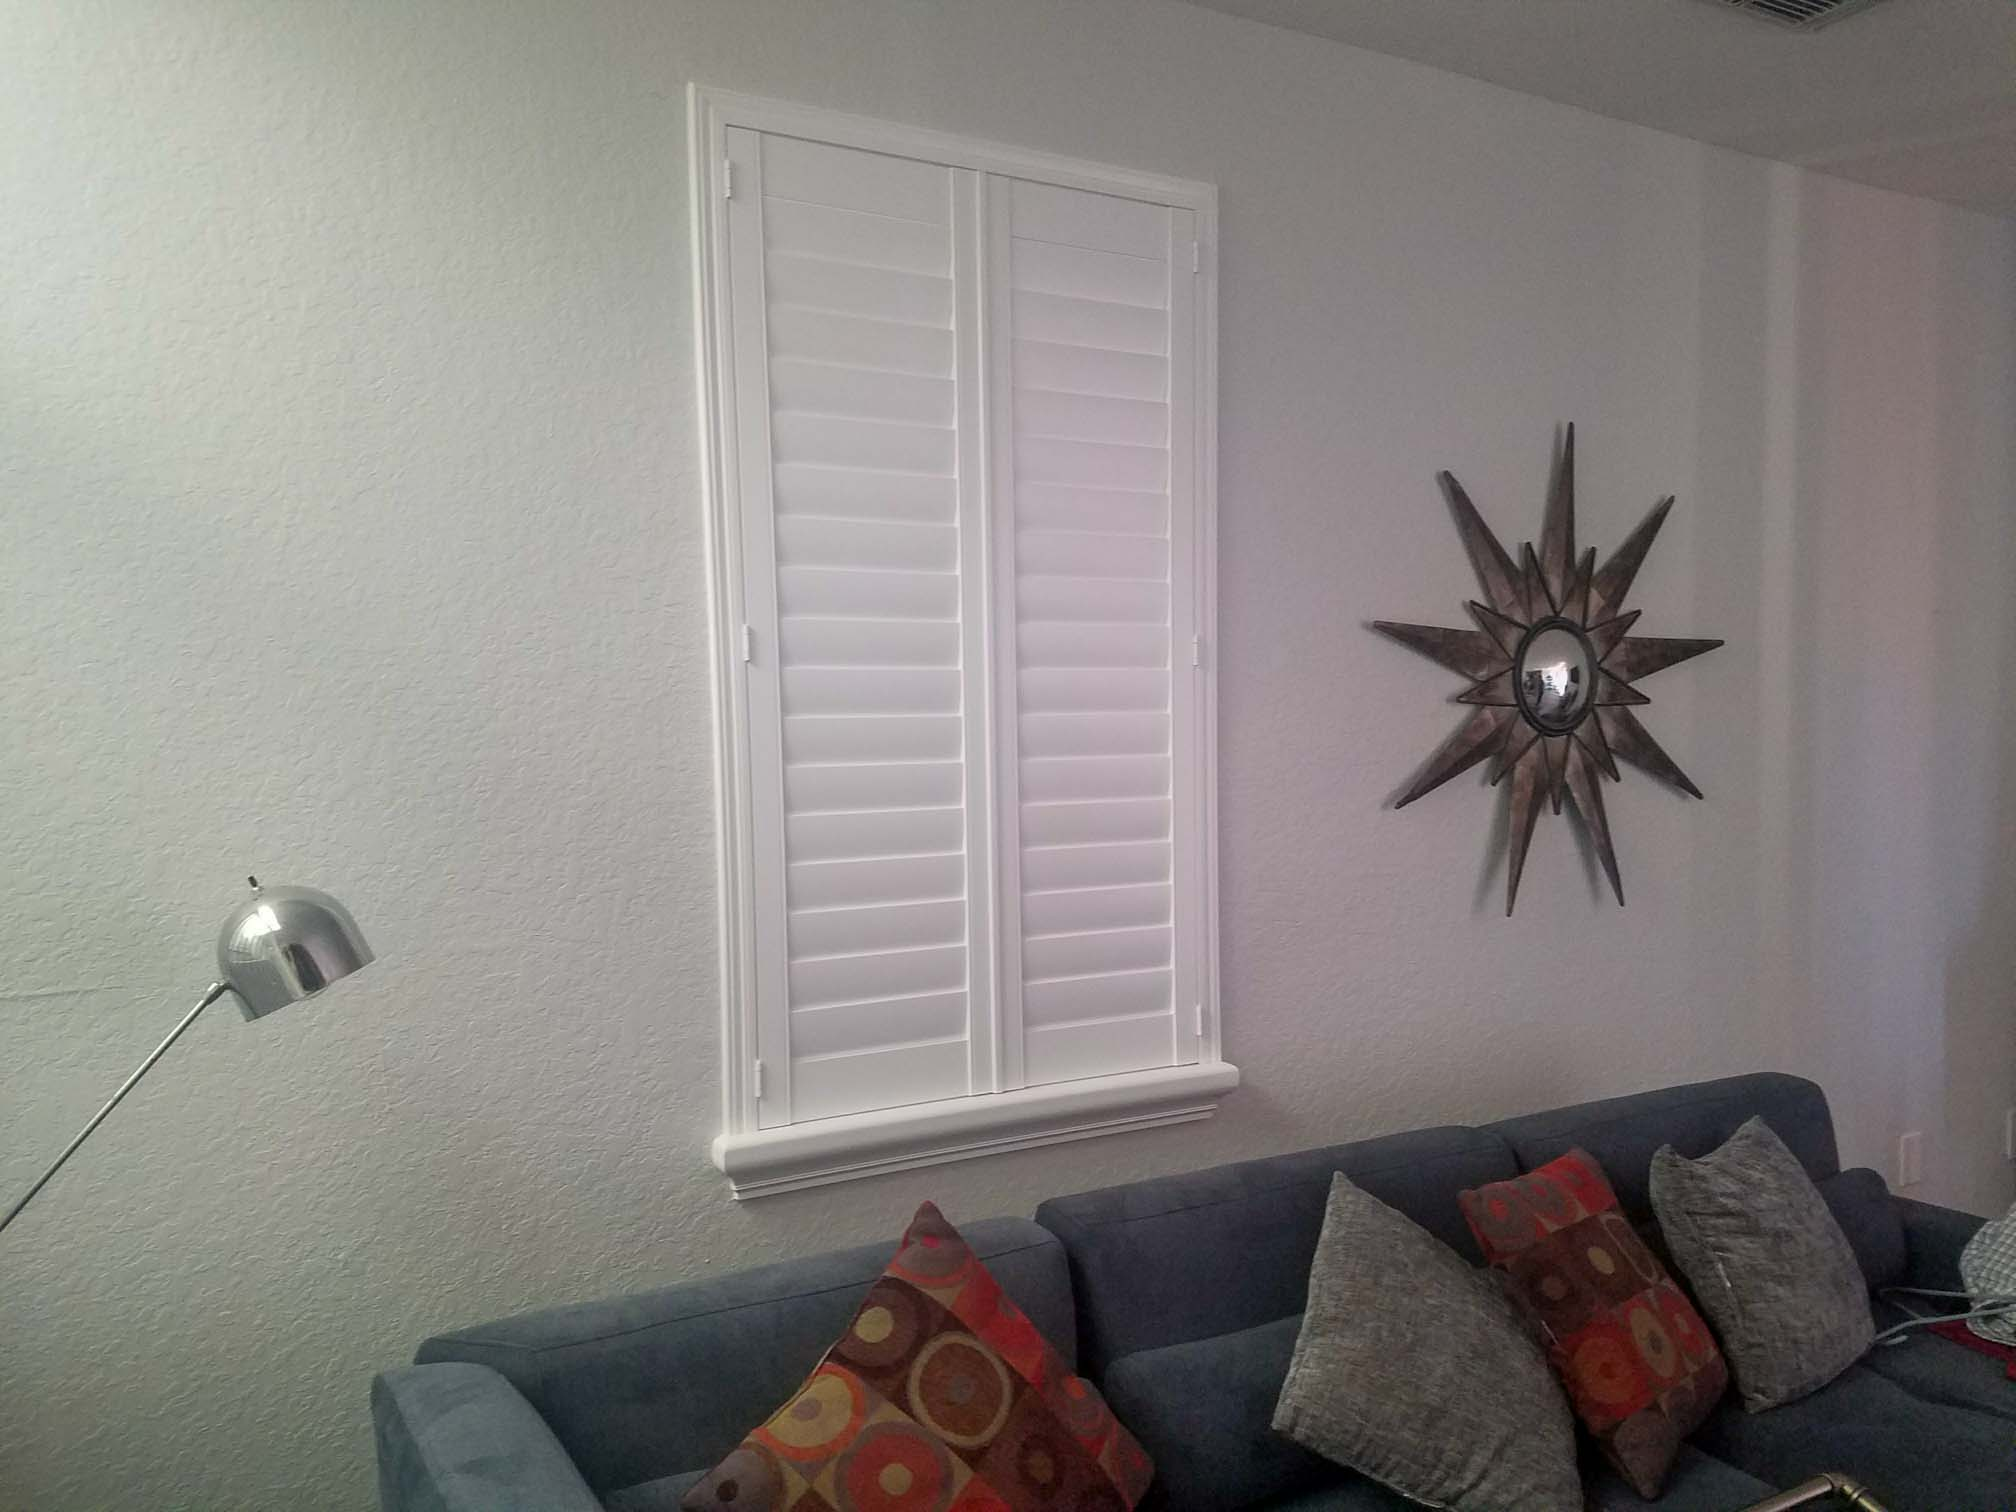 plantation shutters gallery PLANTATION SHUTTERS GALLERY 20171221 134635